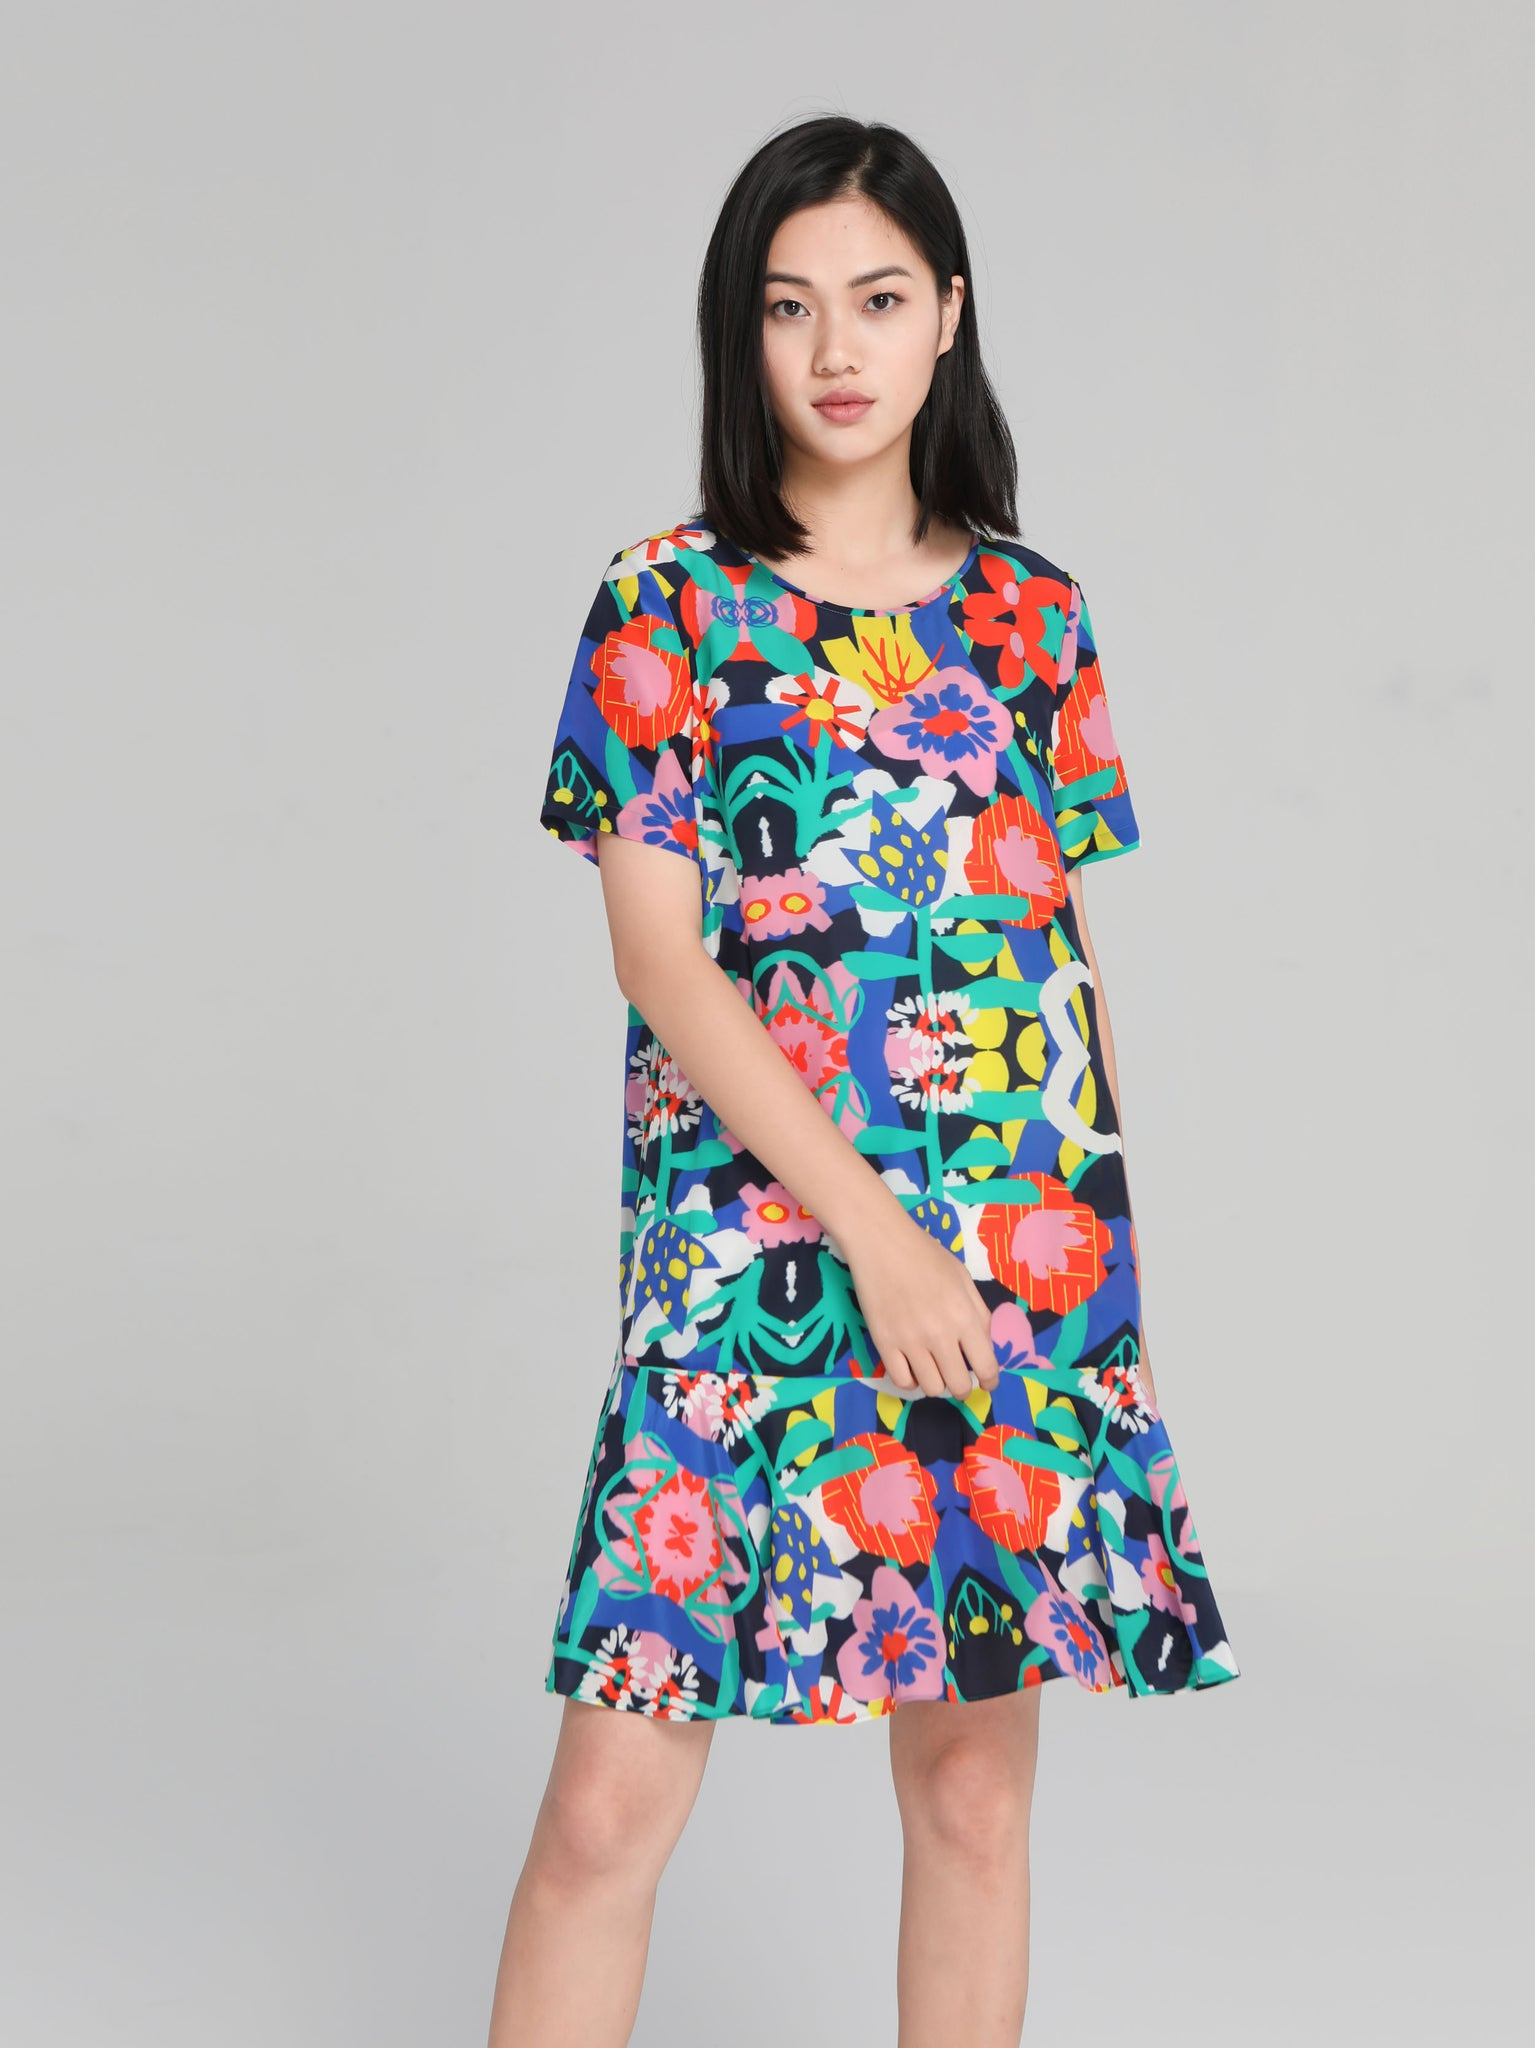 Multicolored Floral Dress